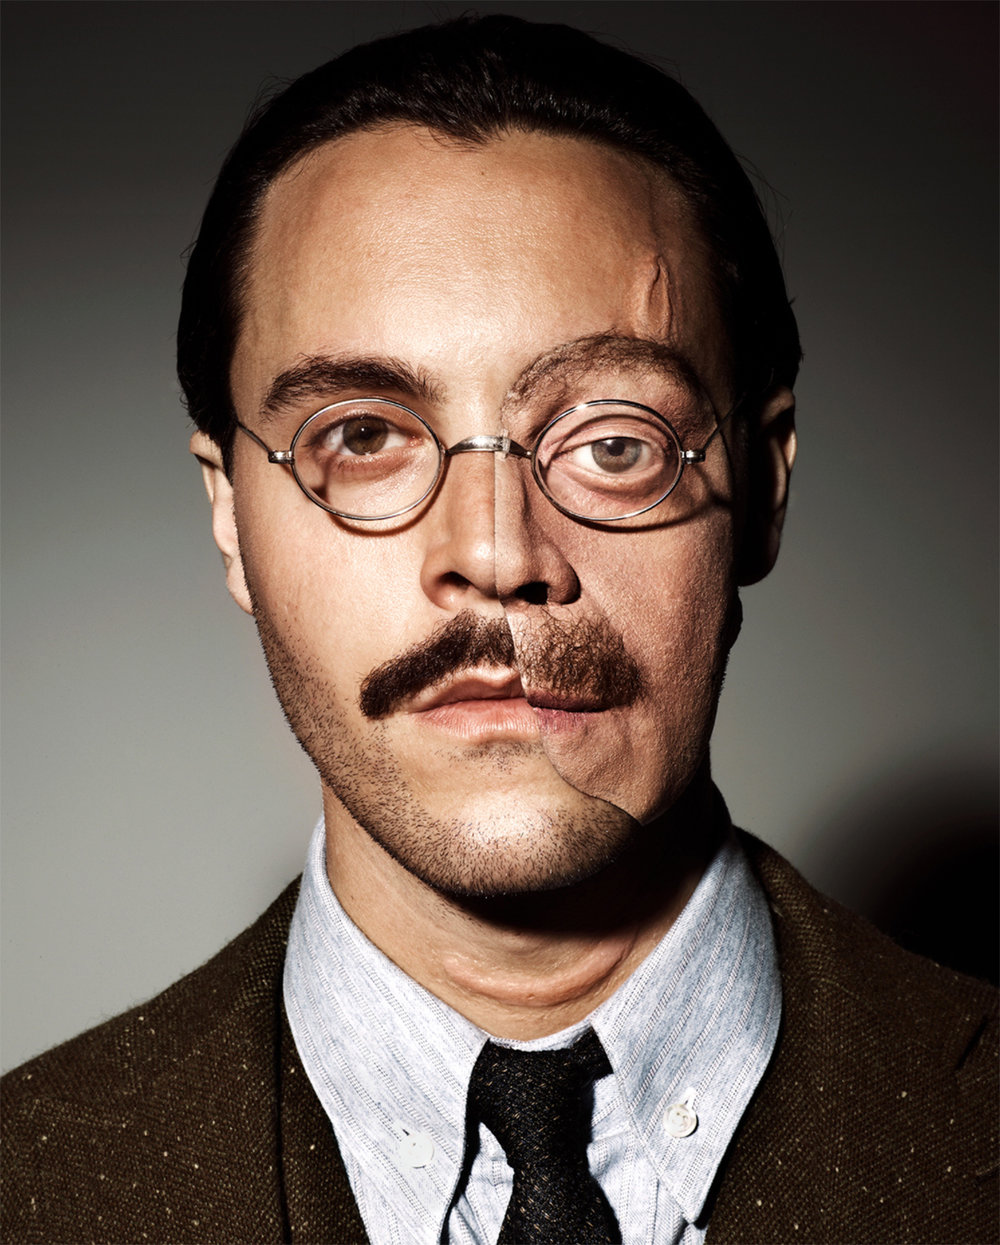 Jack Huston for HBO's Boardwalk Empire - Brooklyn, NY